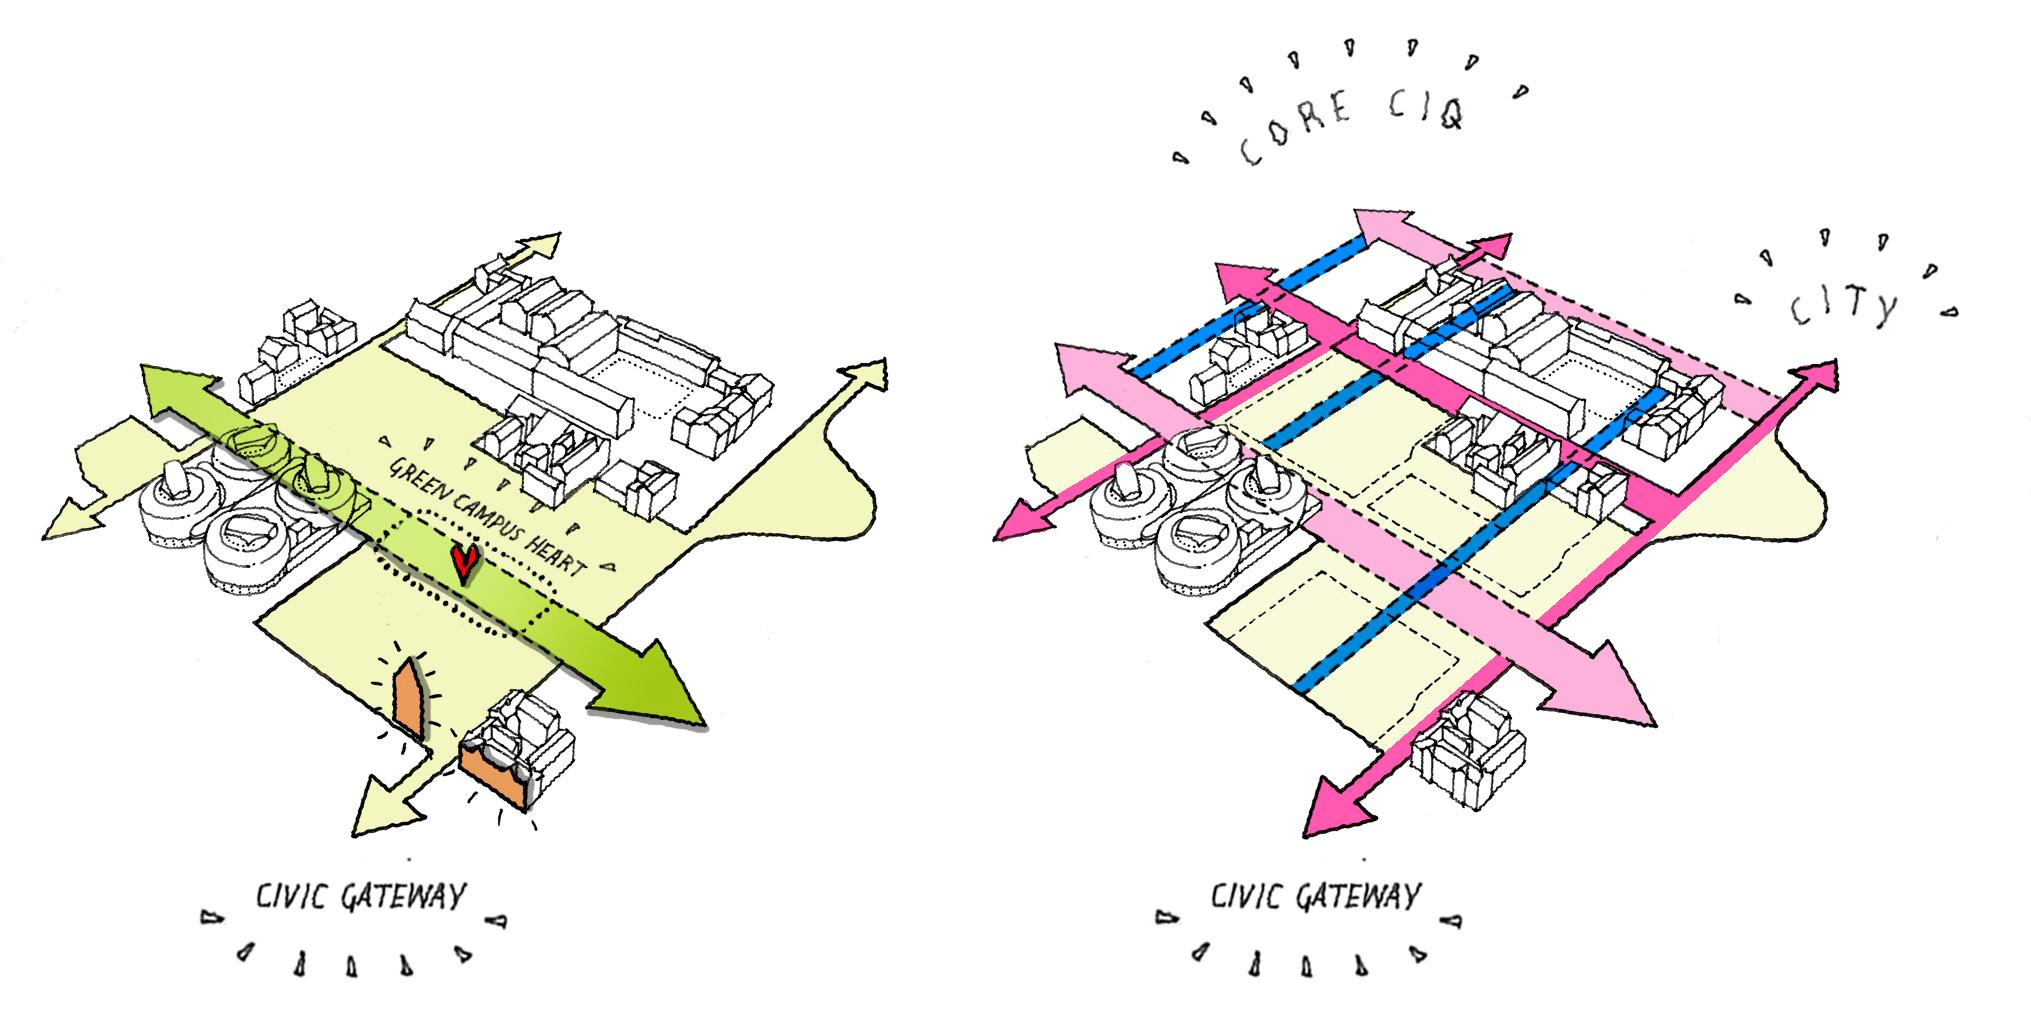 two sketches illustrating community movement through master planned university campus layouts